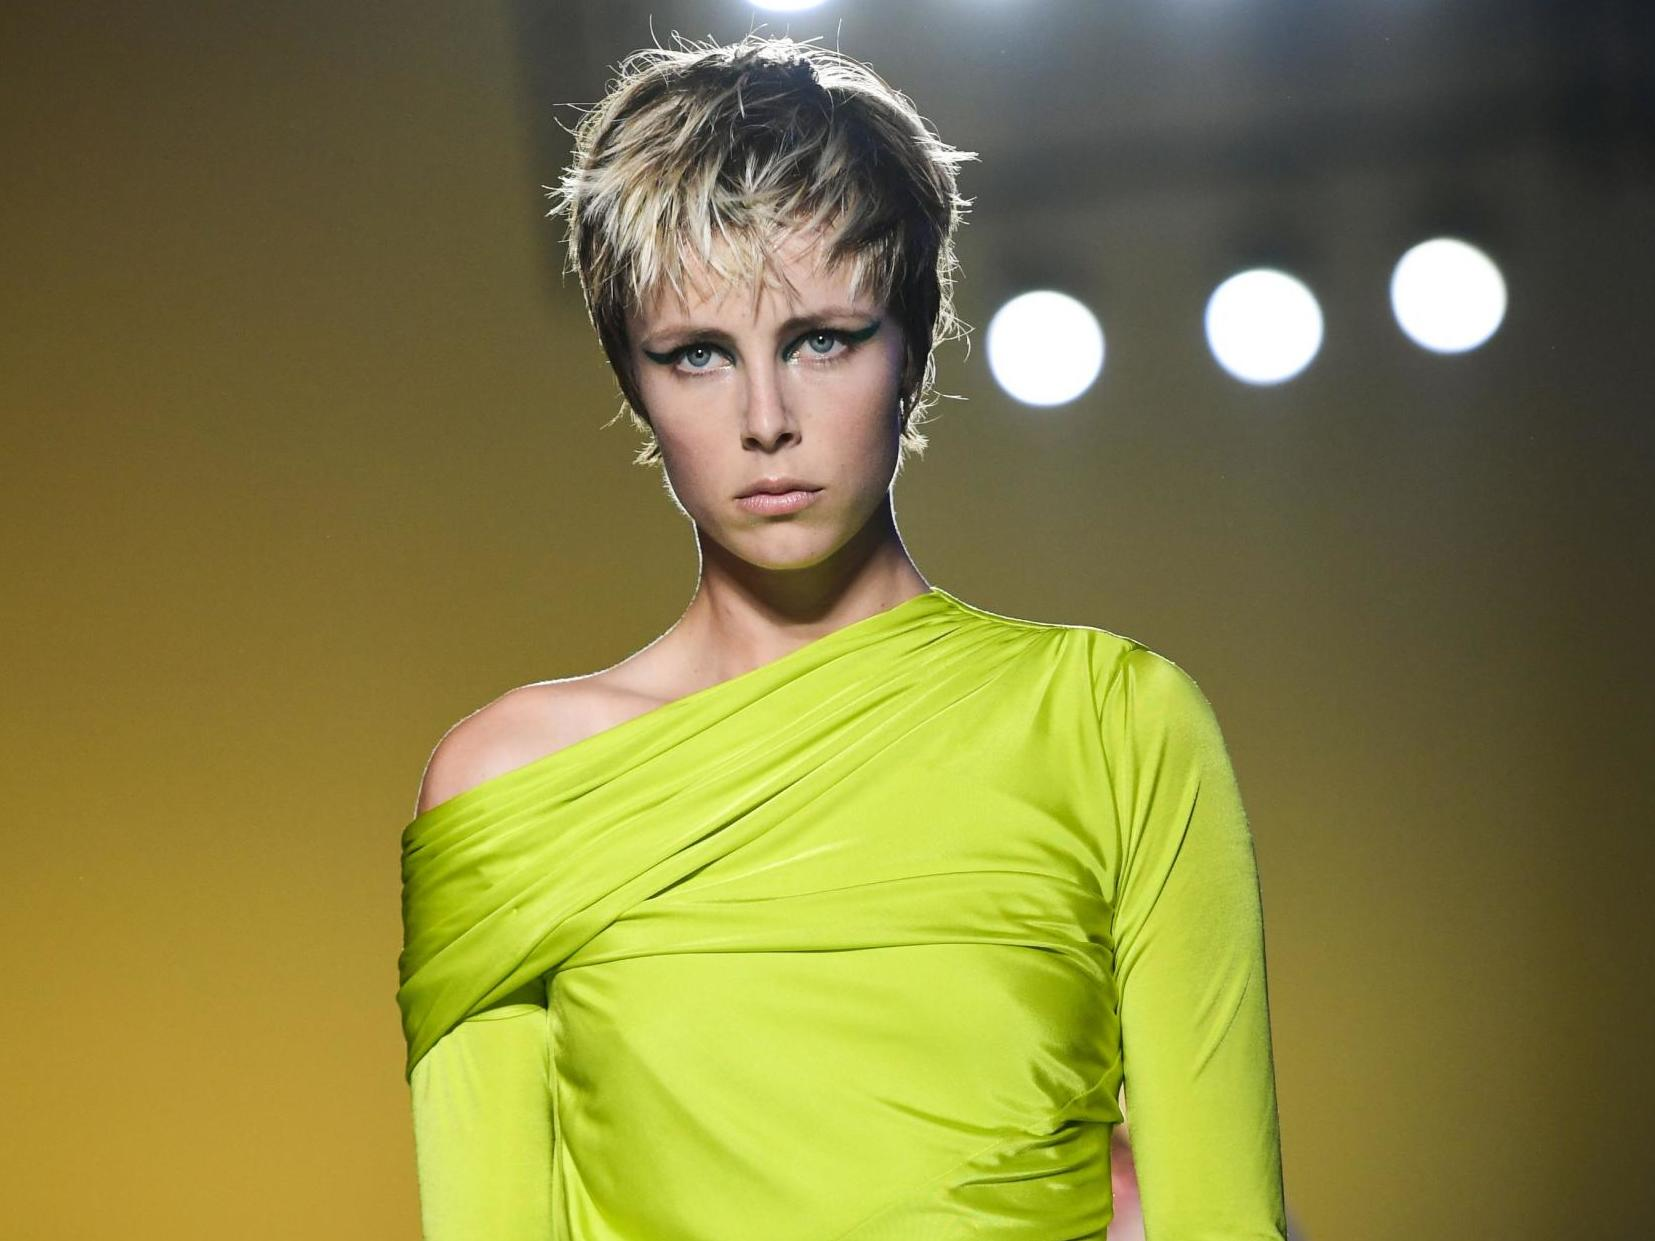 b9c3cdc7b9 Milan Fashion Week 2019: Model Edie Campbell told she's 'too fat' to open  show | The Independent